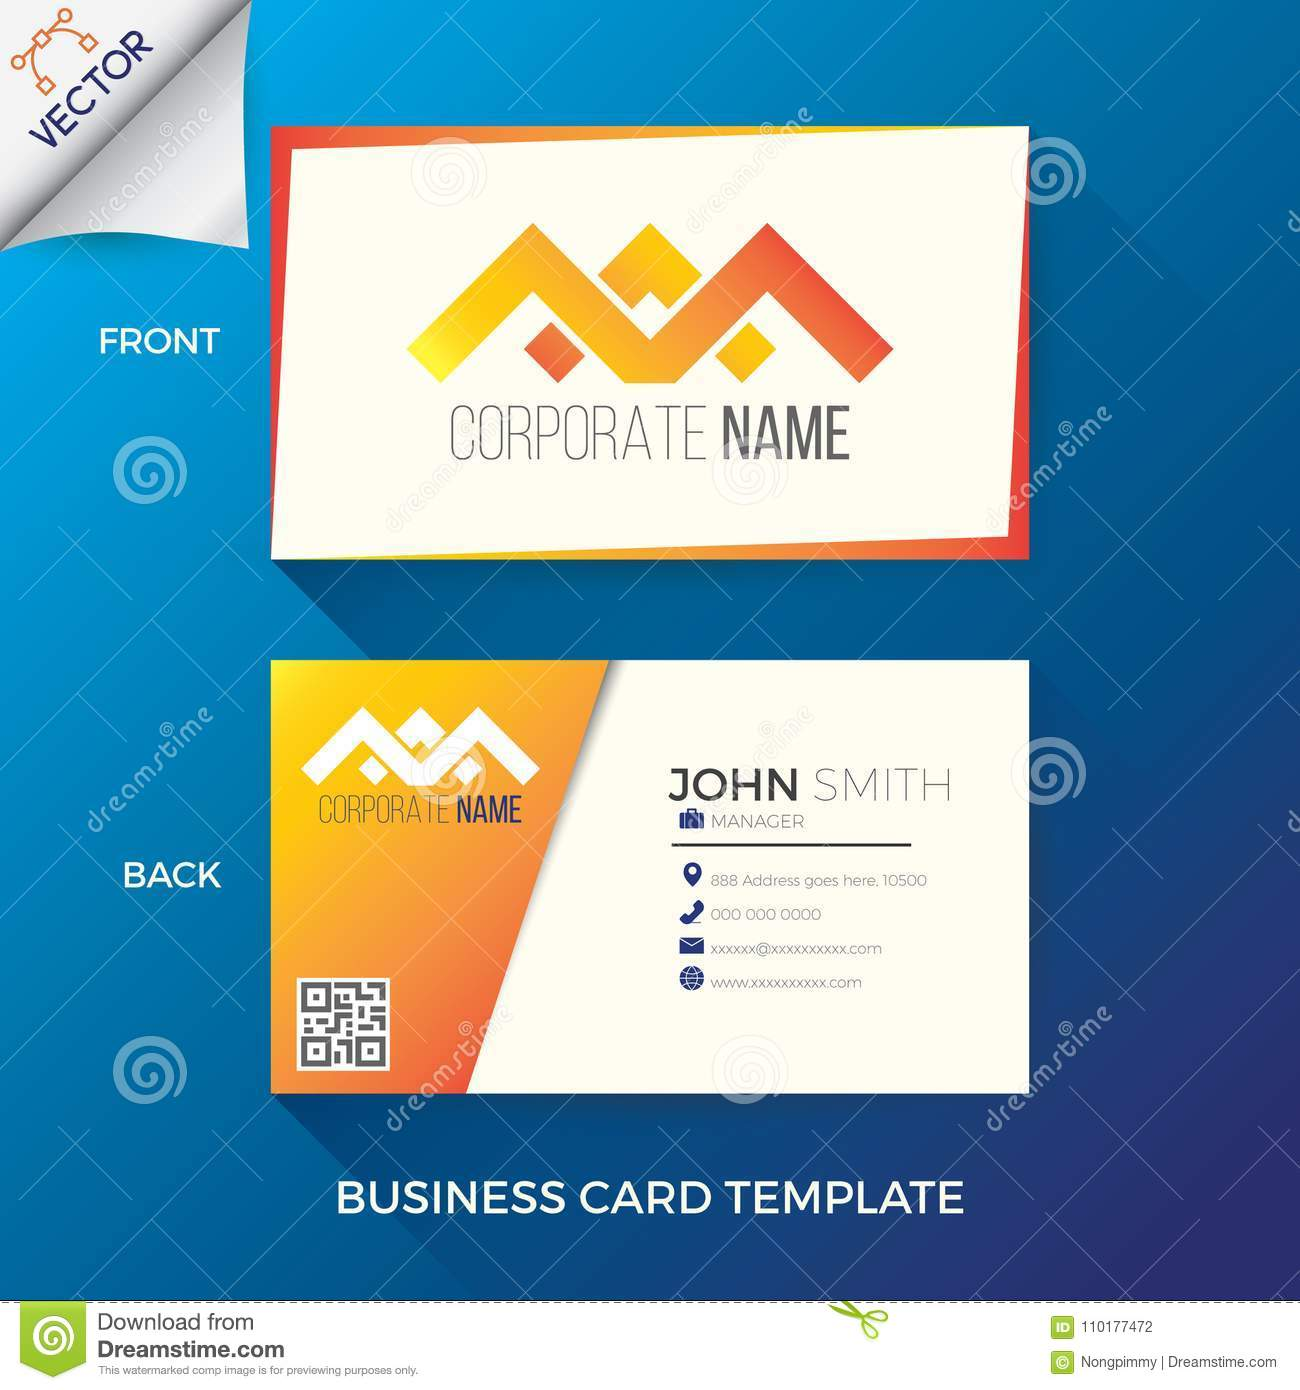 Business name card template stock vector illustration of mobile business name card template in creative modern and clean style with front and back layout colourmoves